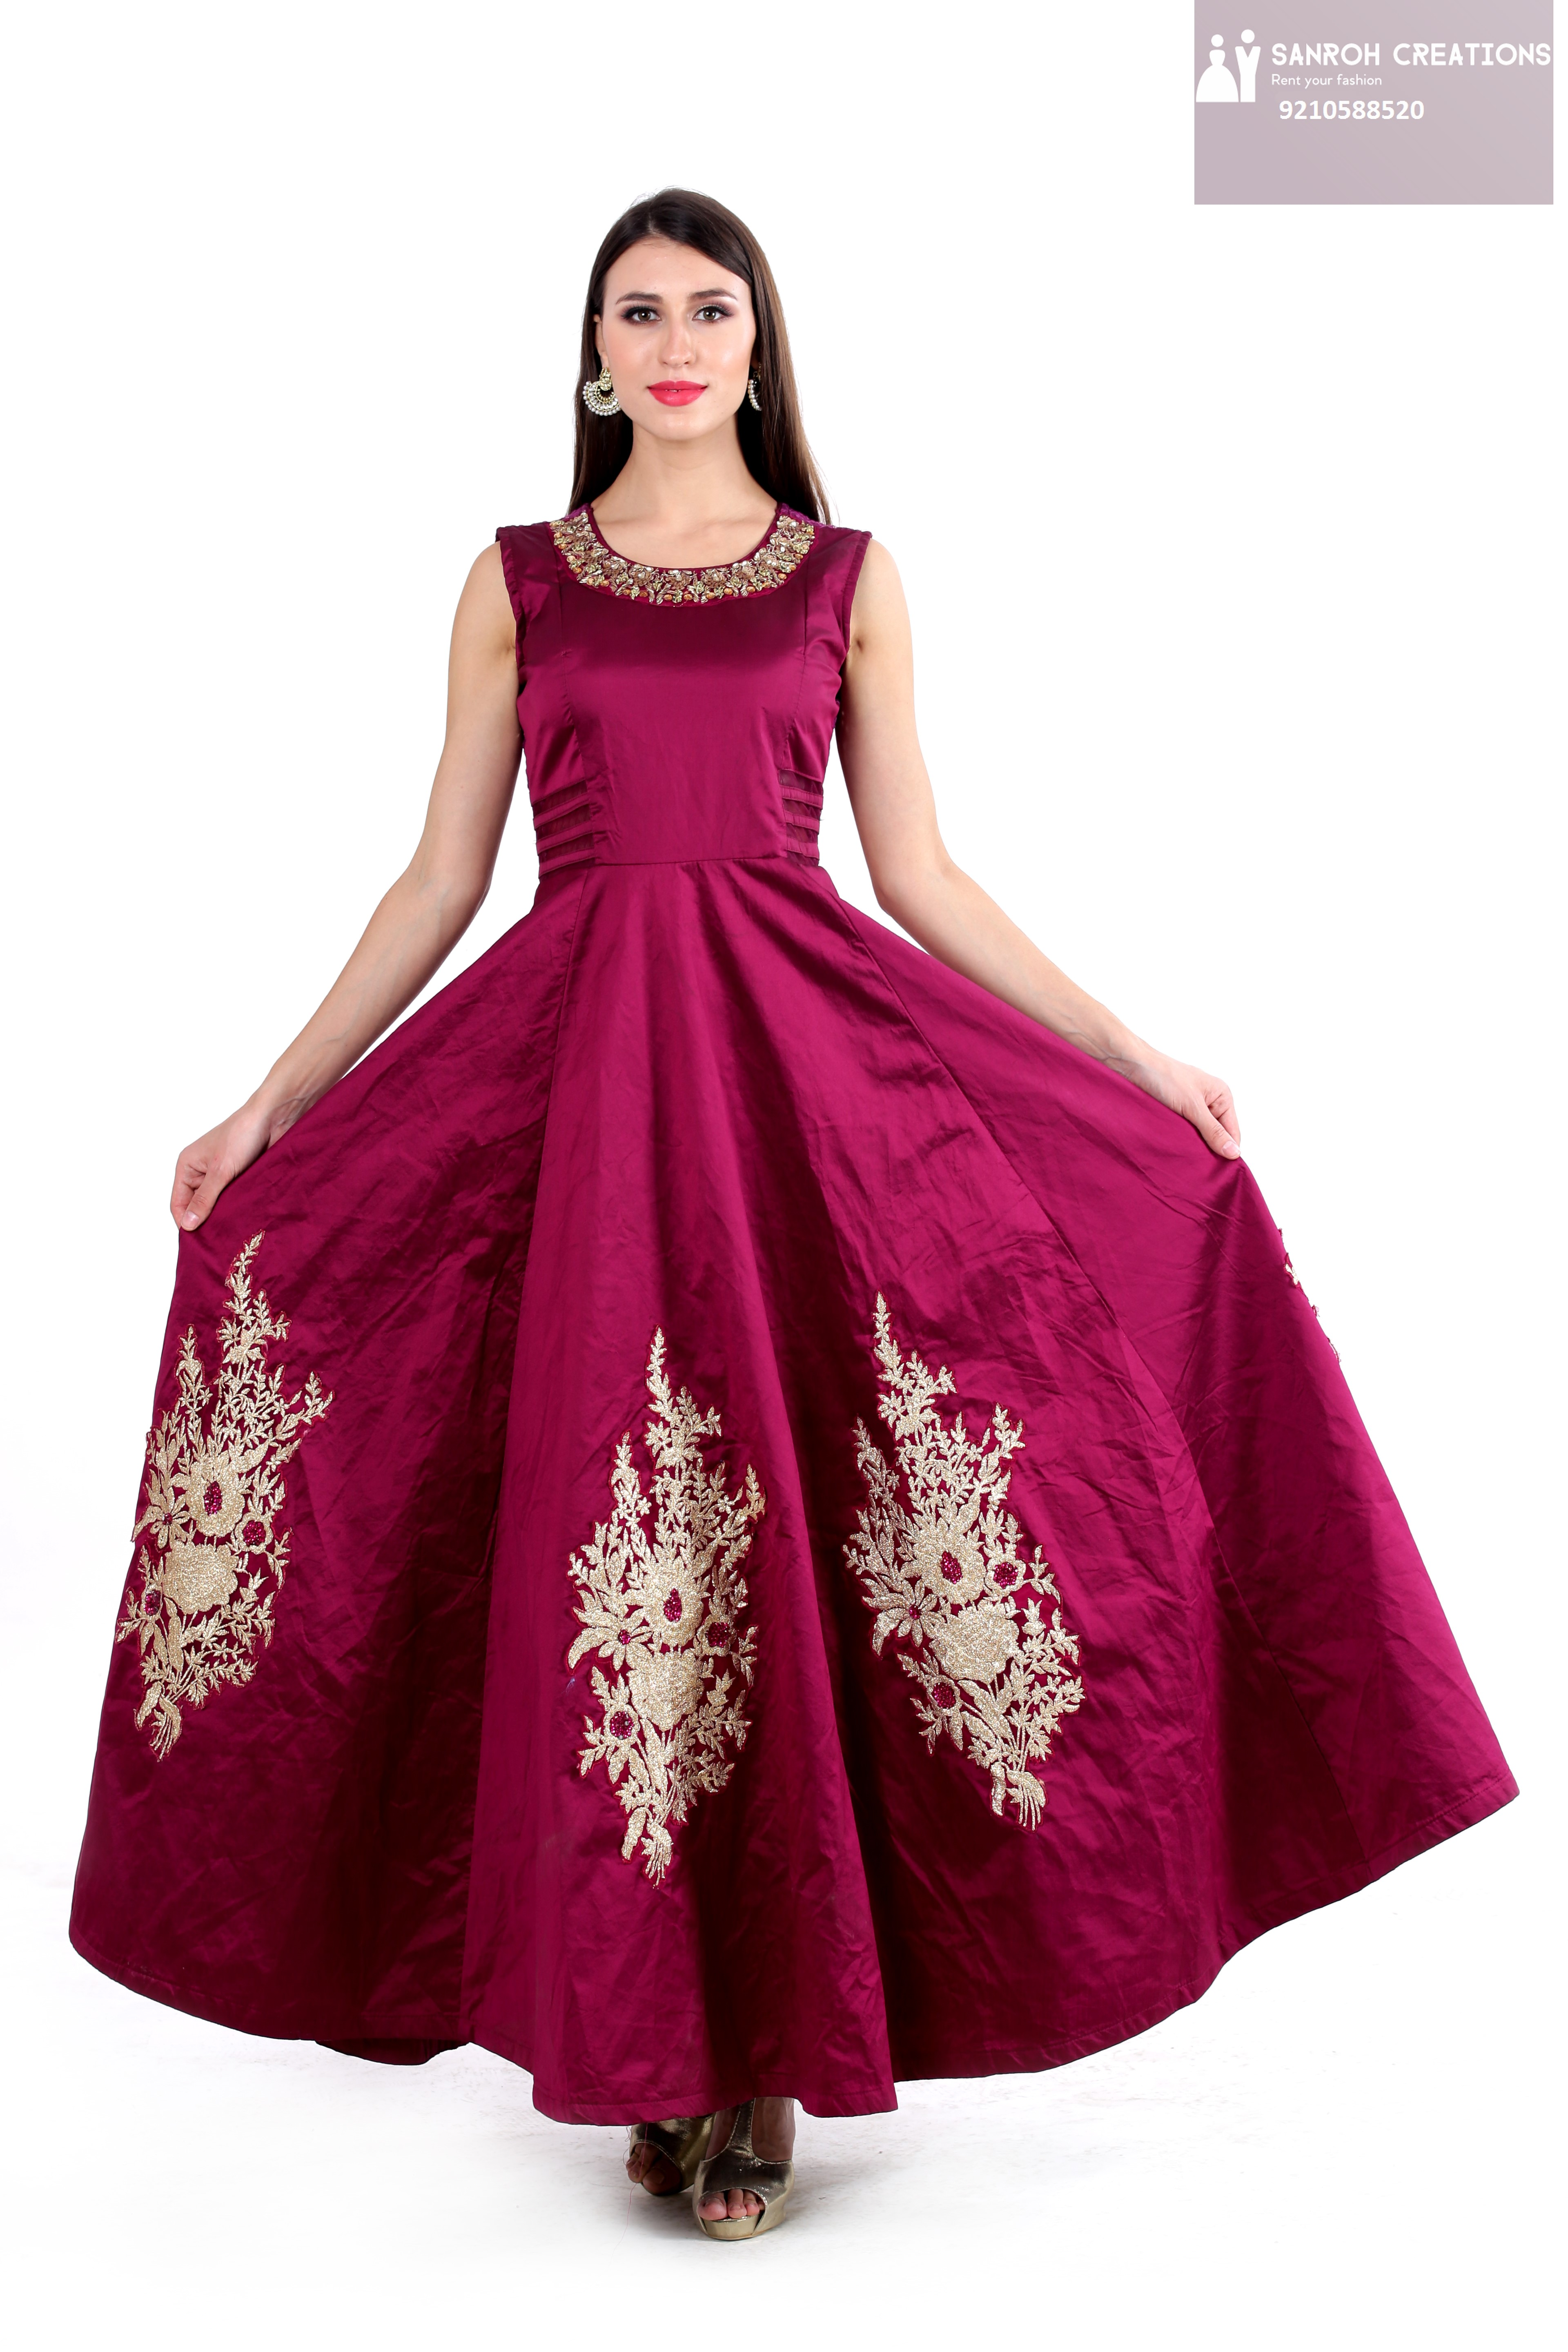 dresses for girls on rent in Gurgaon Sector 29